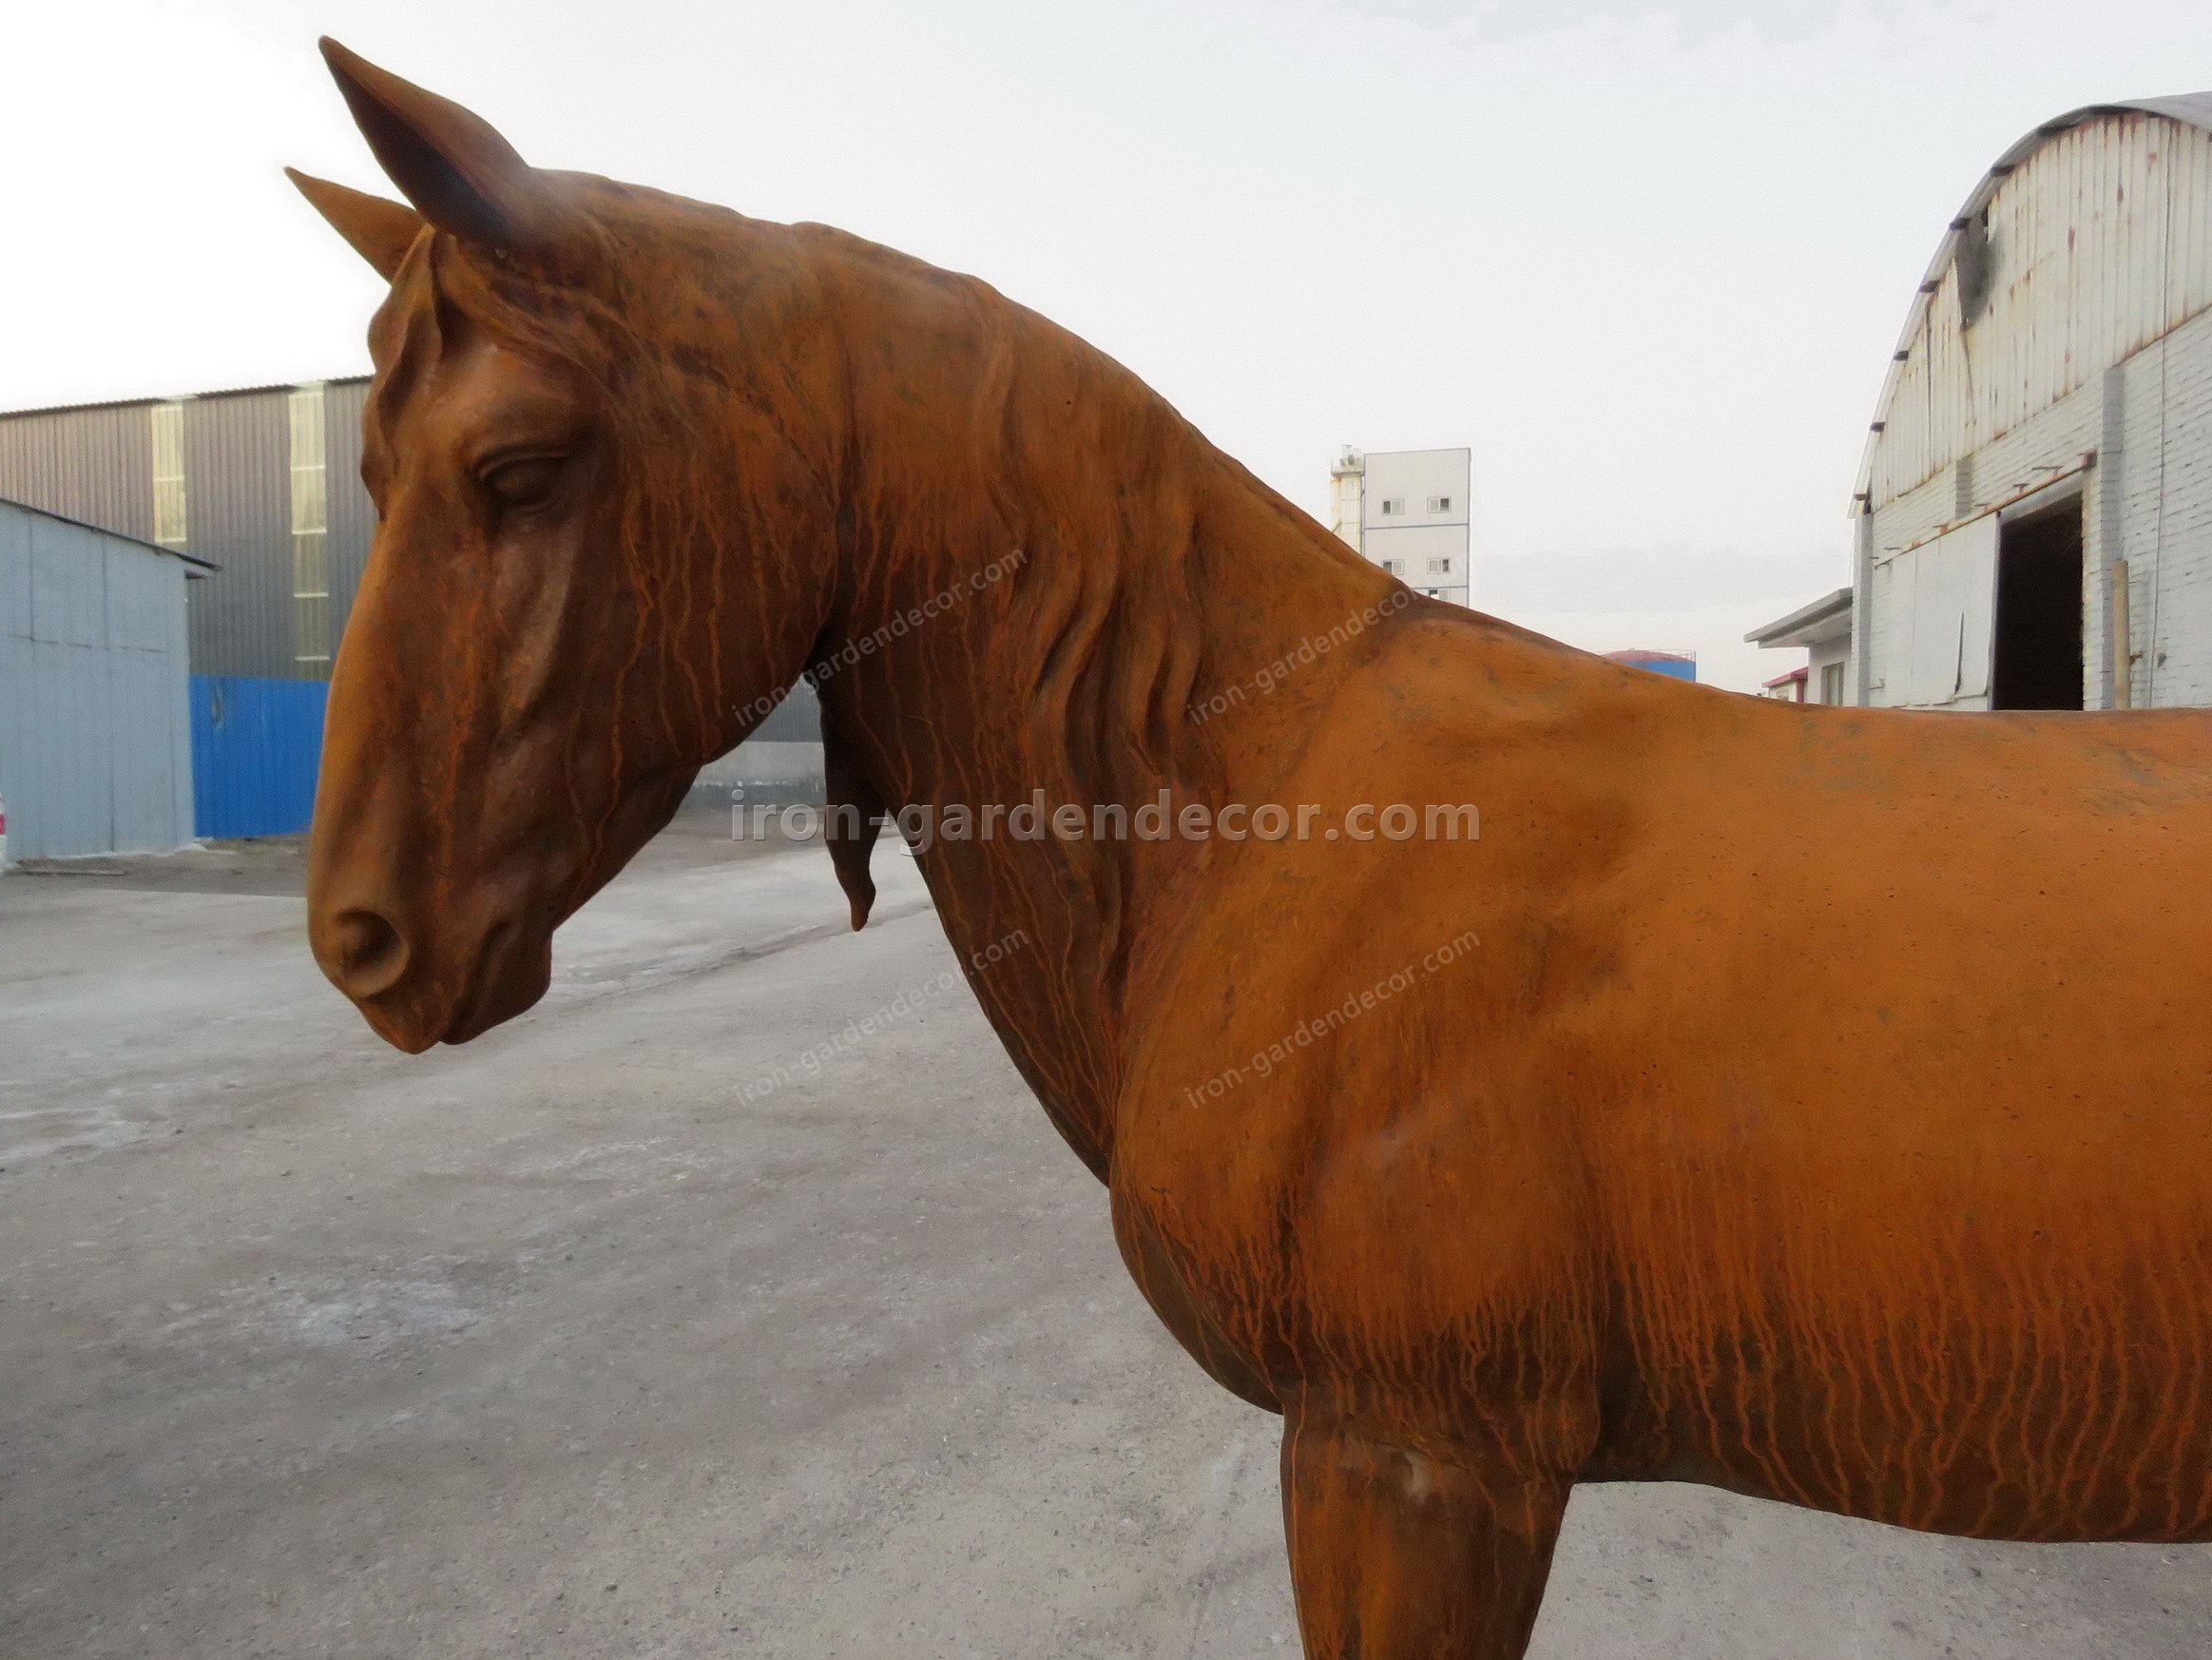 normal size cast iron animal of horse garden animal, large horse animal-SS6027 (7)